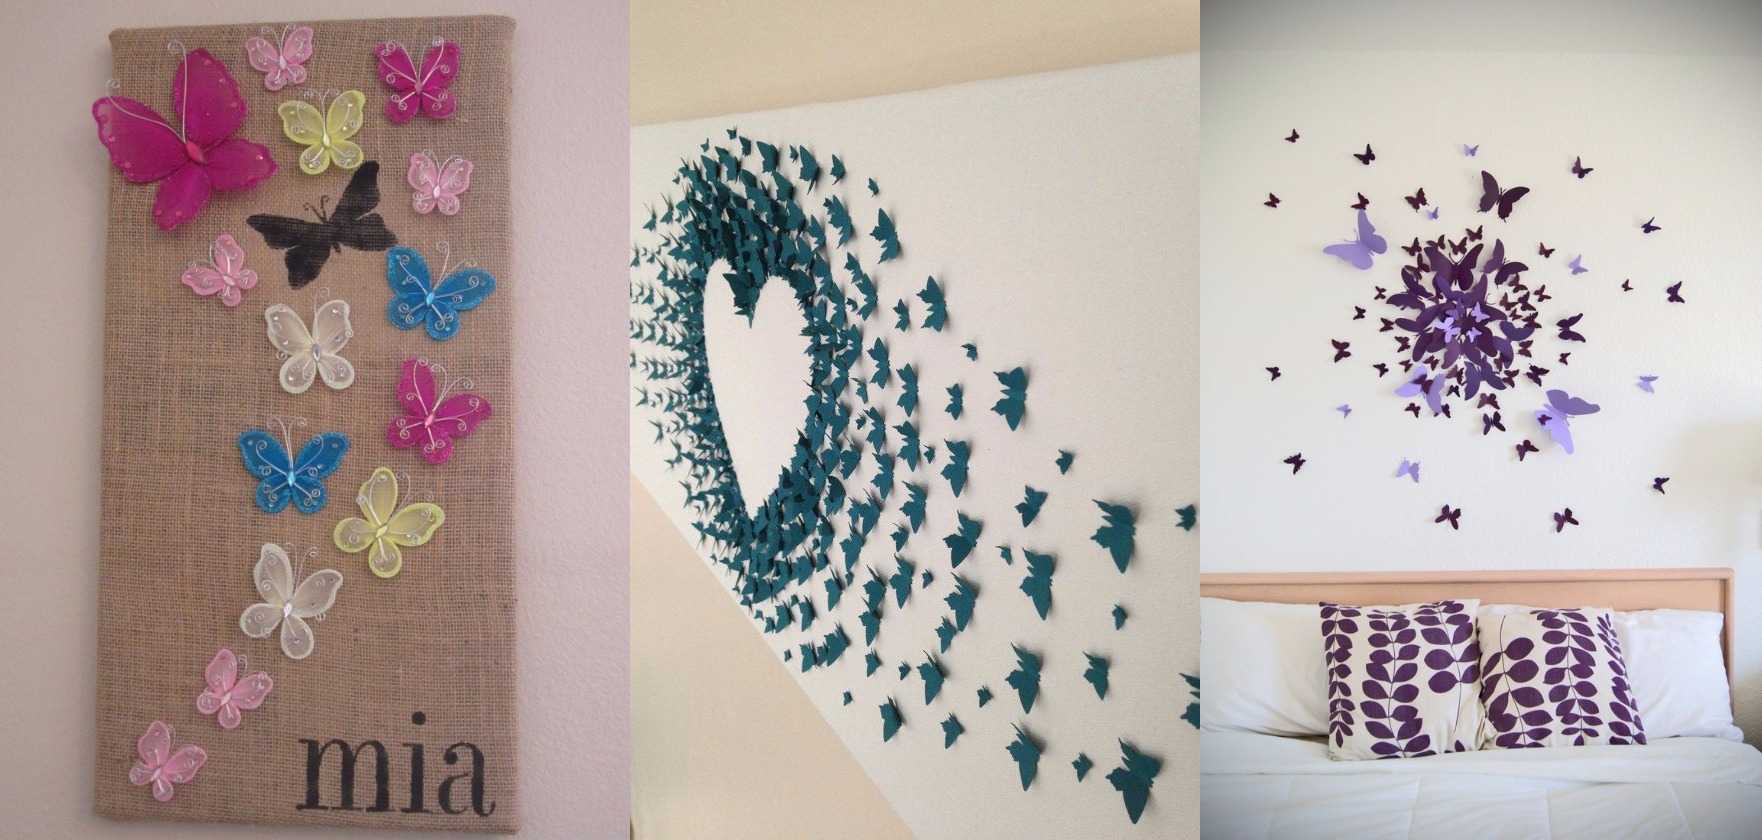 10 diy butterfly wall decor ideas with directions a diy for Diy wall mural ideas